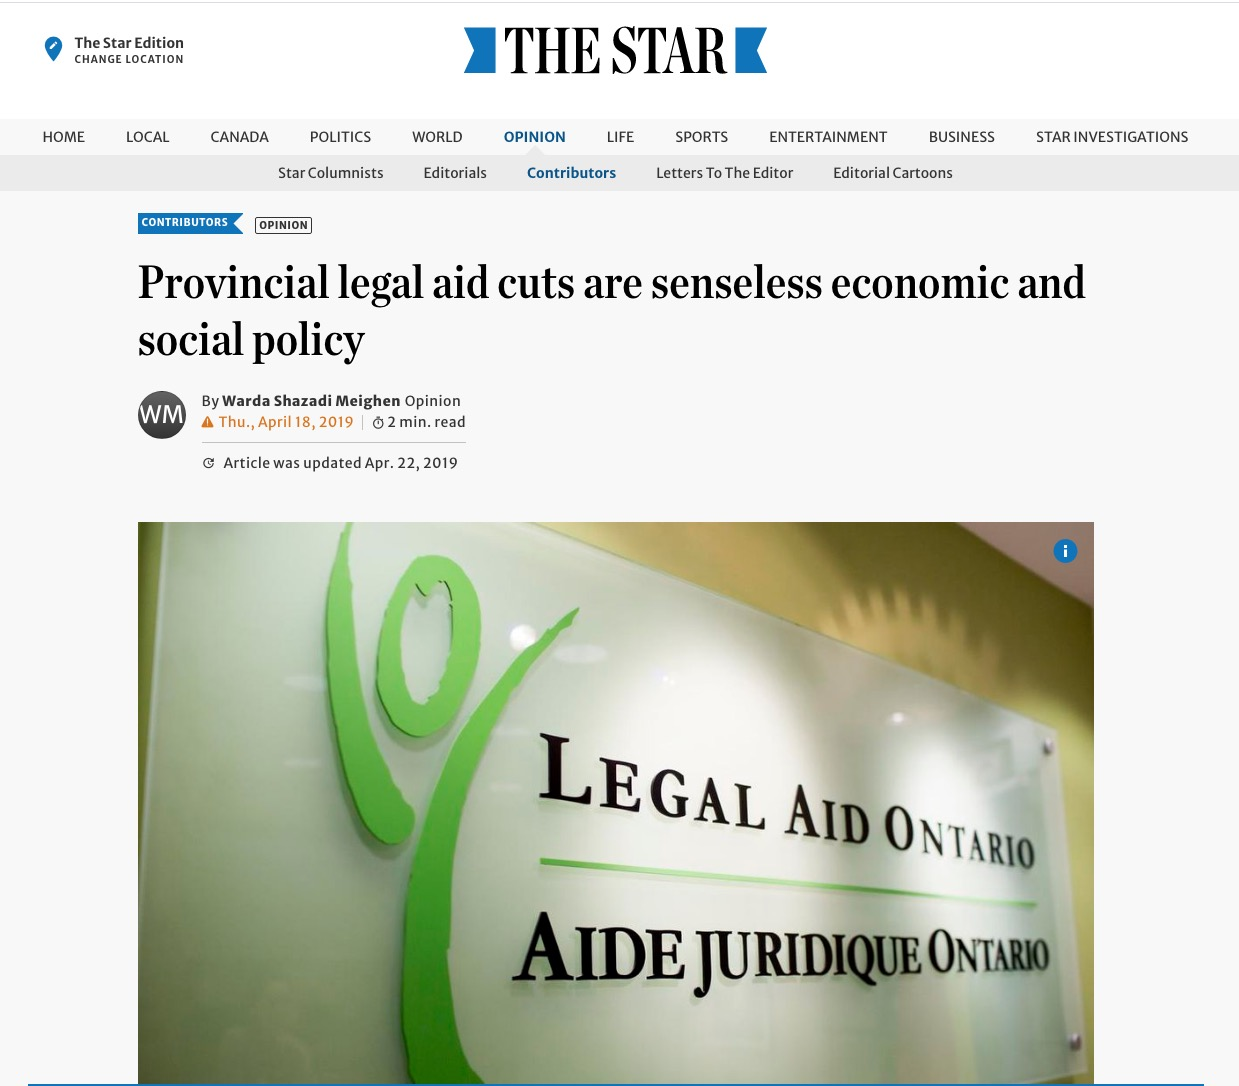 Warda Shazadi Meighen – Provincial legal aid cuts are senseless economic and social policy